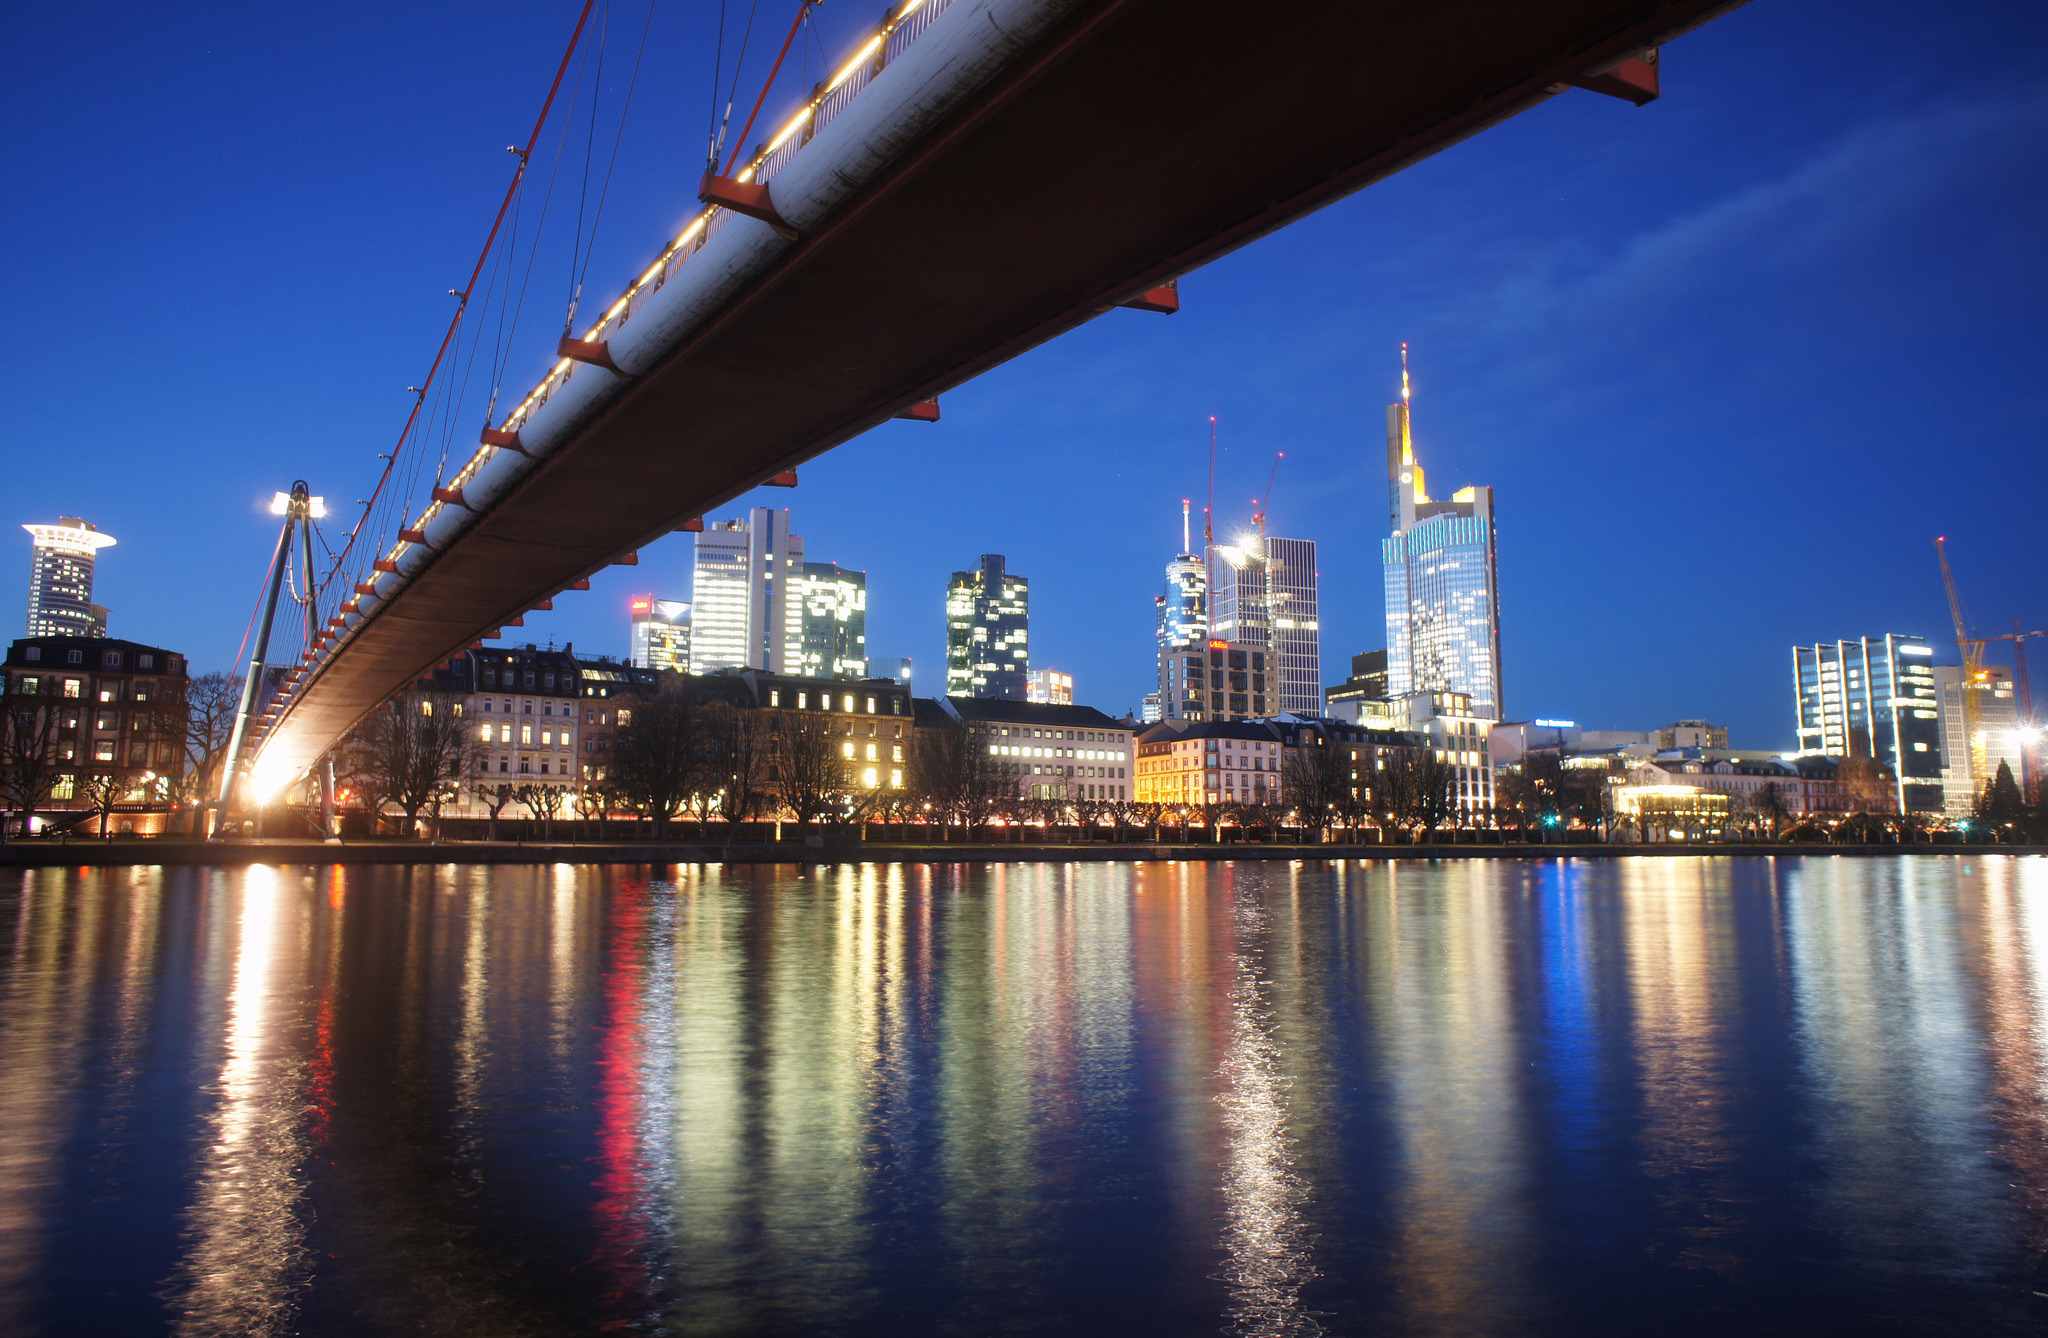 Frankfurt's most Instagrammable places